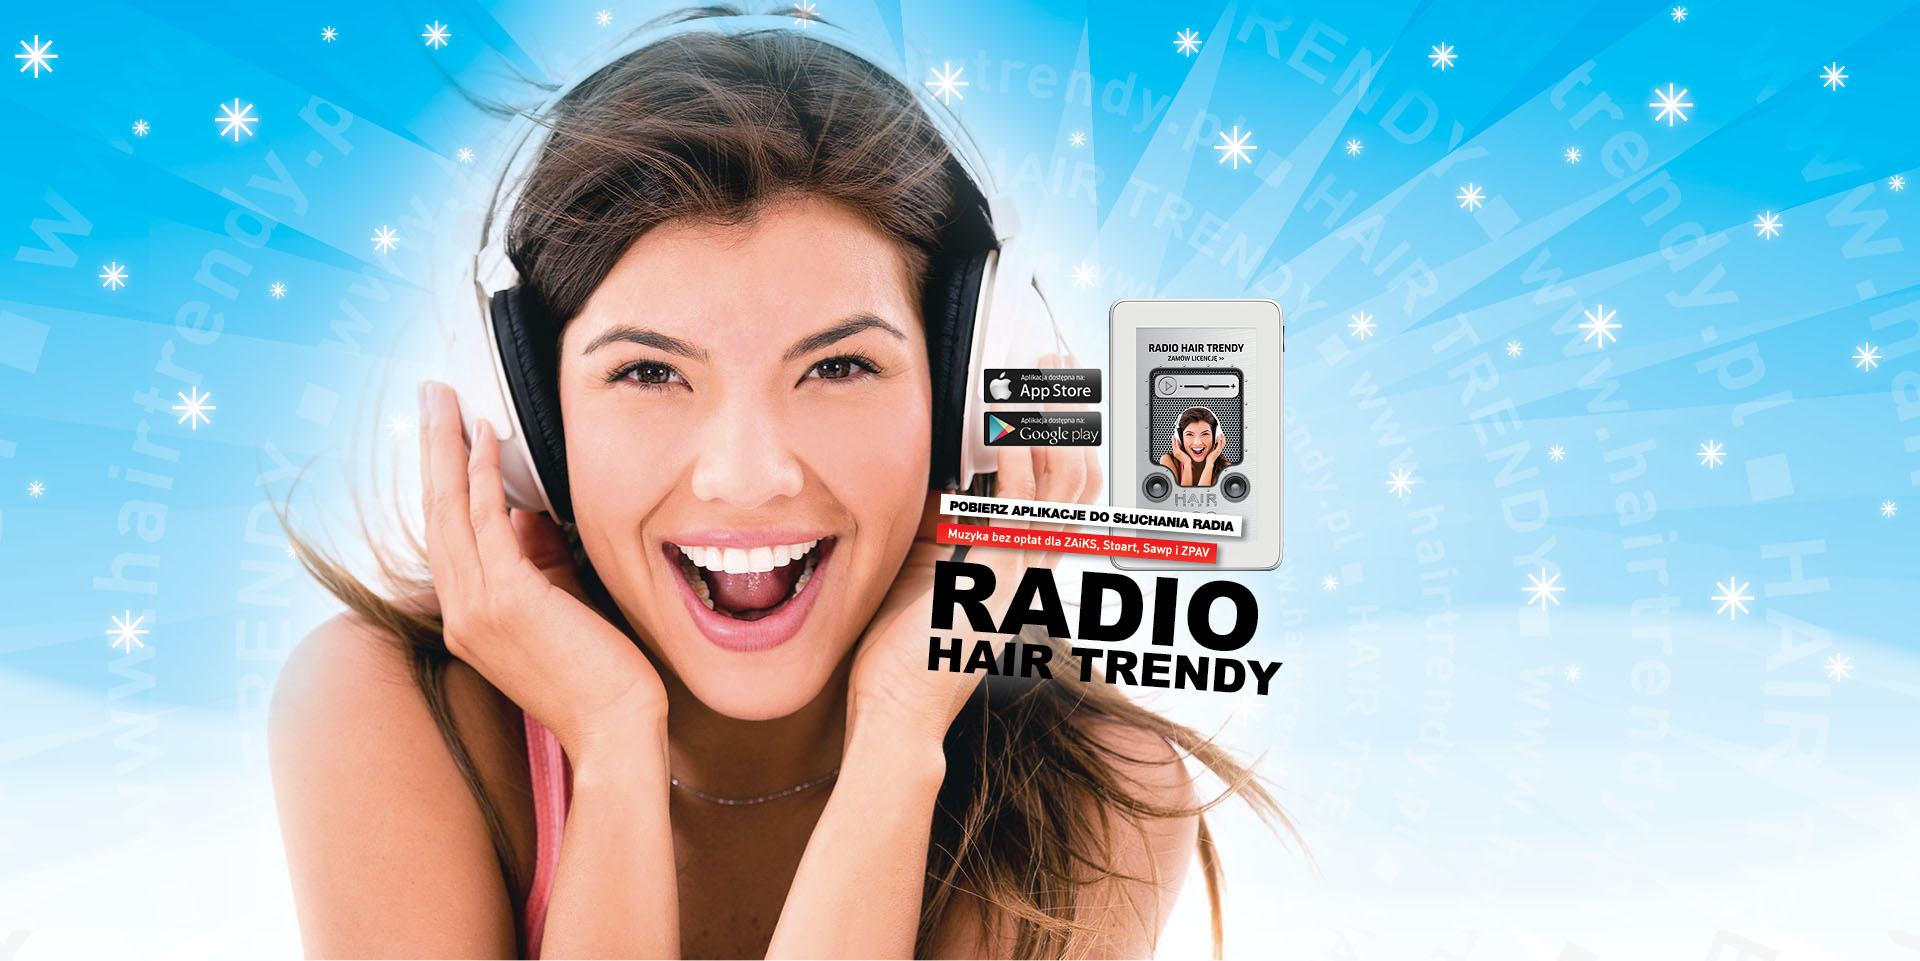 Radio internetowe Hair Trendy